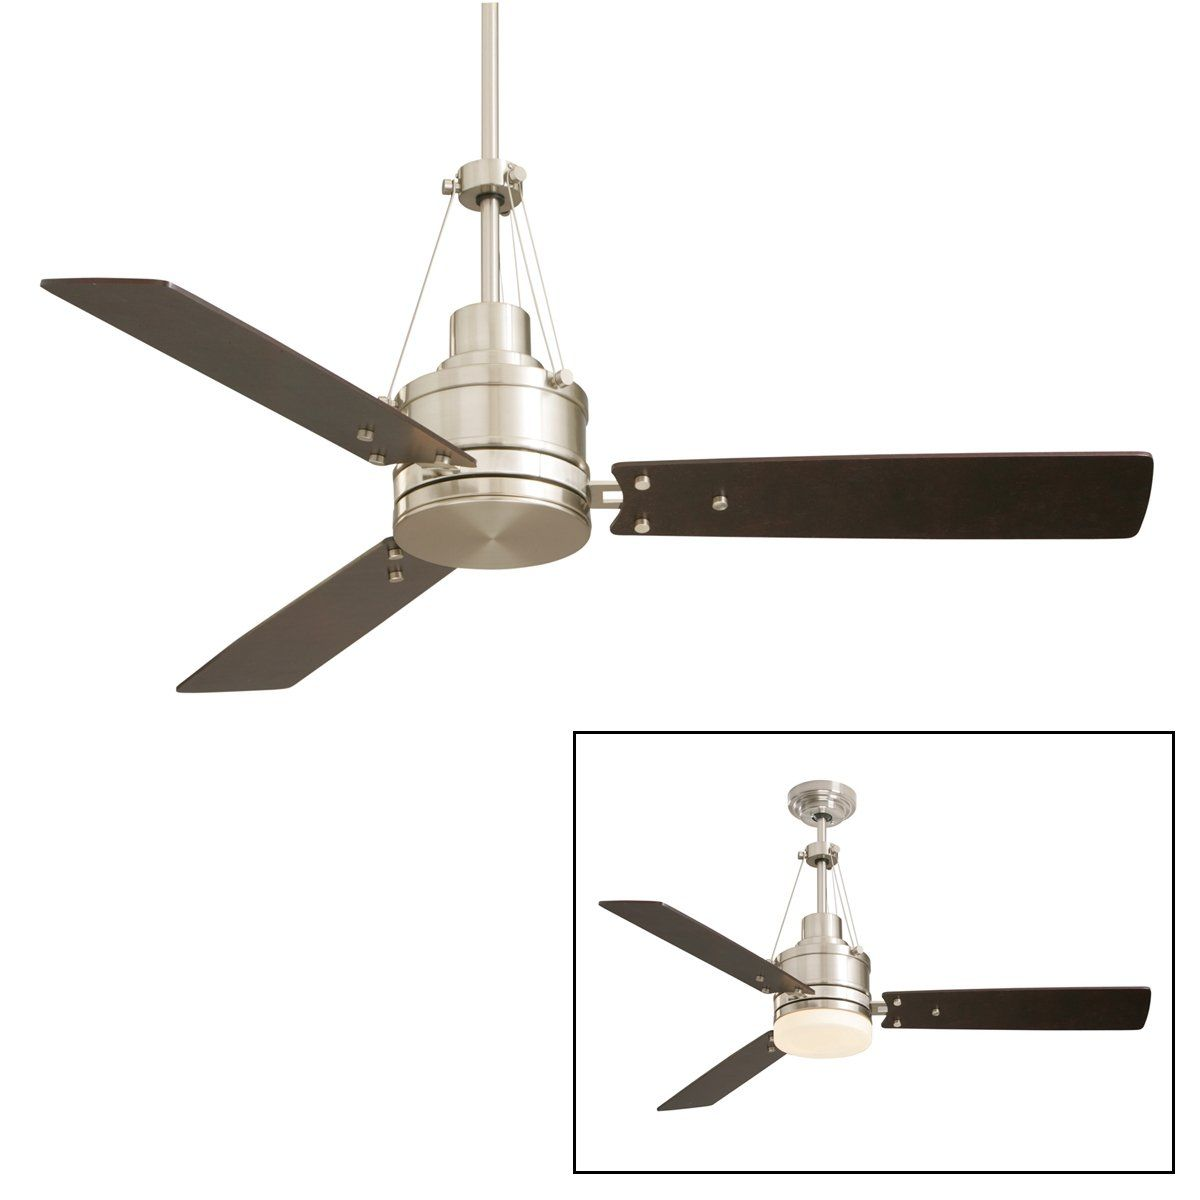 Shop emerson electric cf205 2 light 54 in highpointe ceiling fan at emerson electric cf205 2 light 54 in highpointe ceiling fan the mine aloadofball Image collections